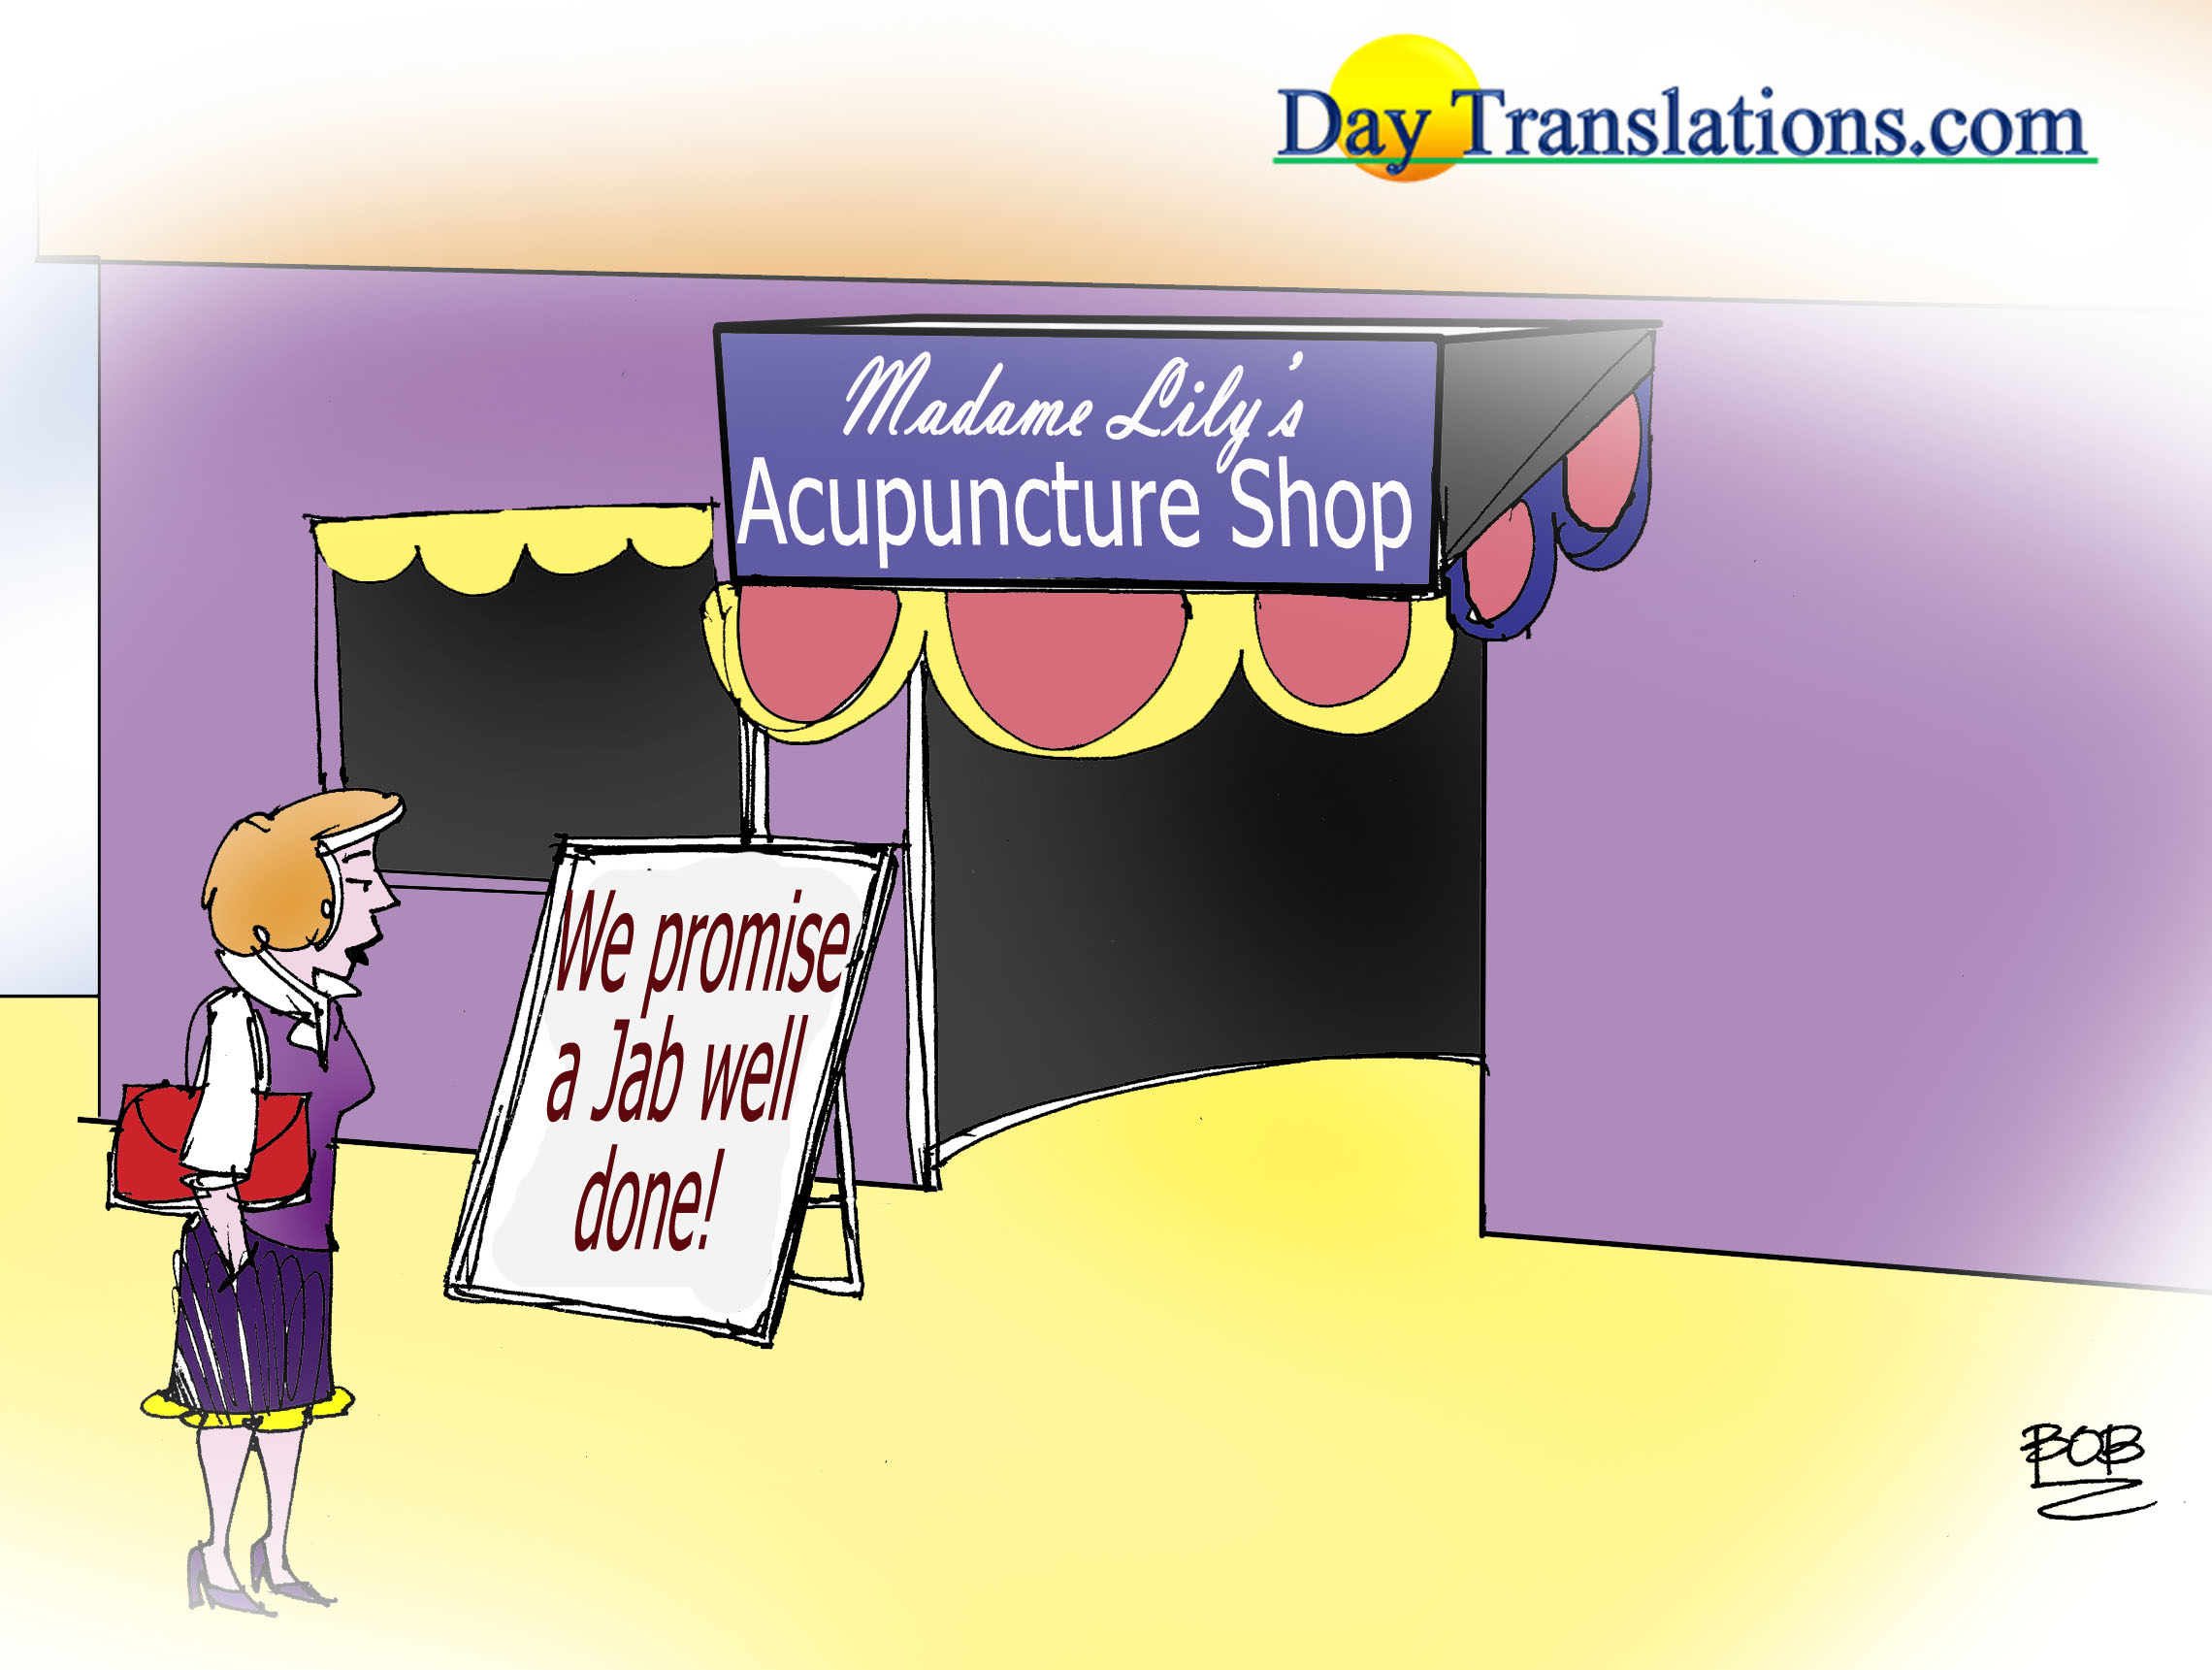 Today's Cartoon - Acupuncture